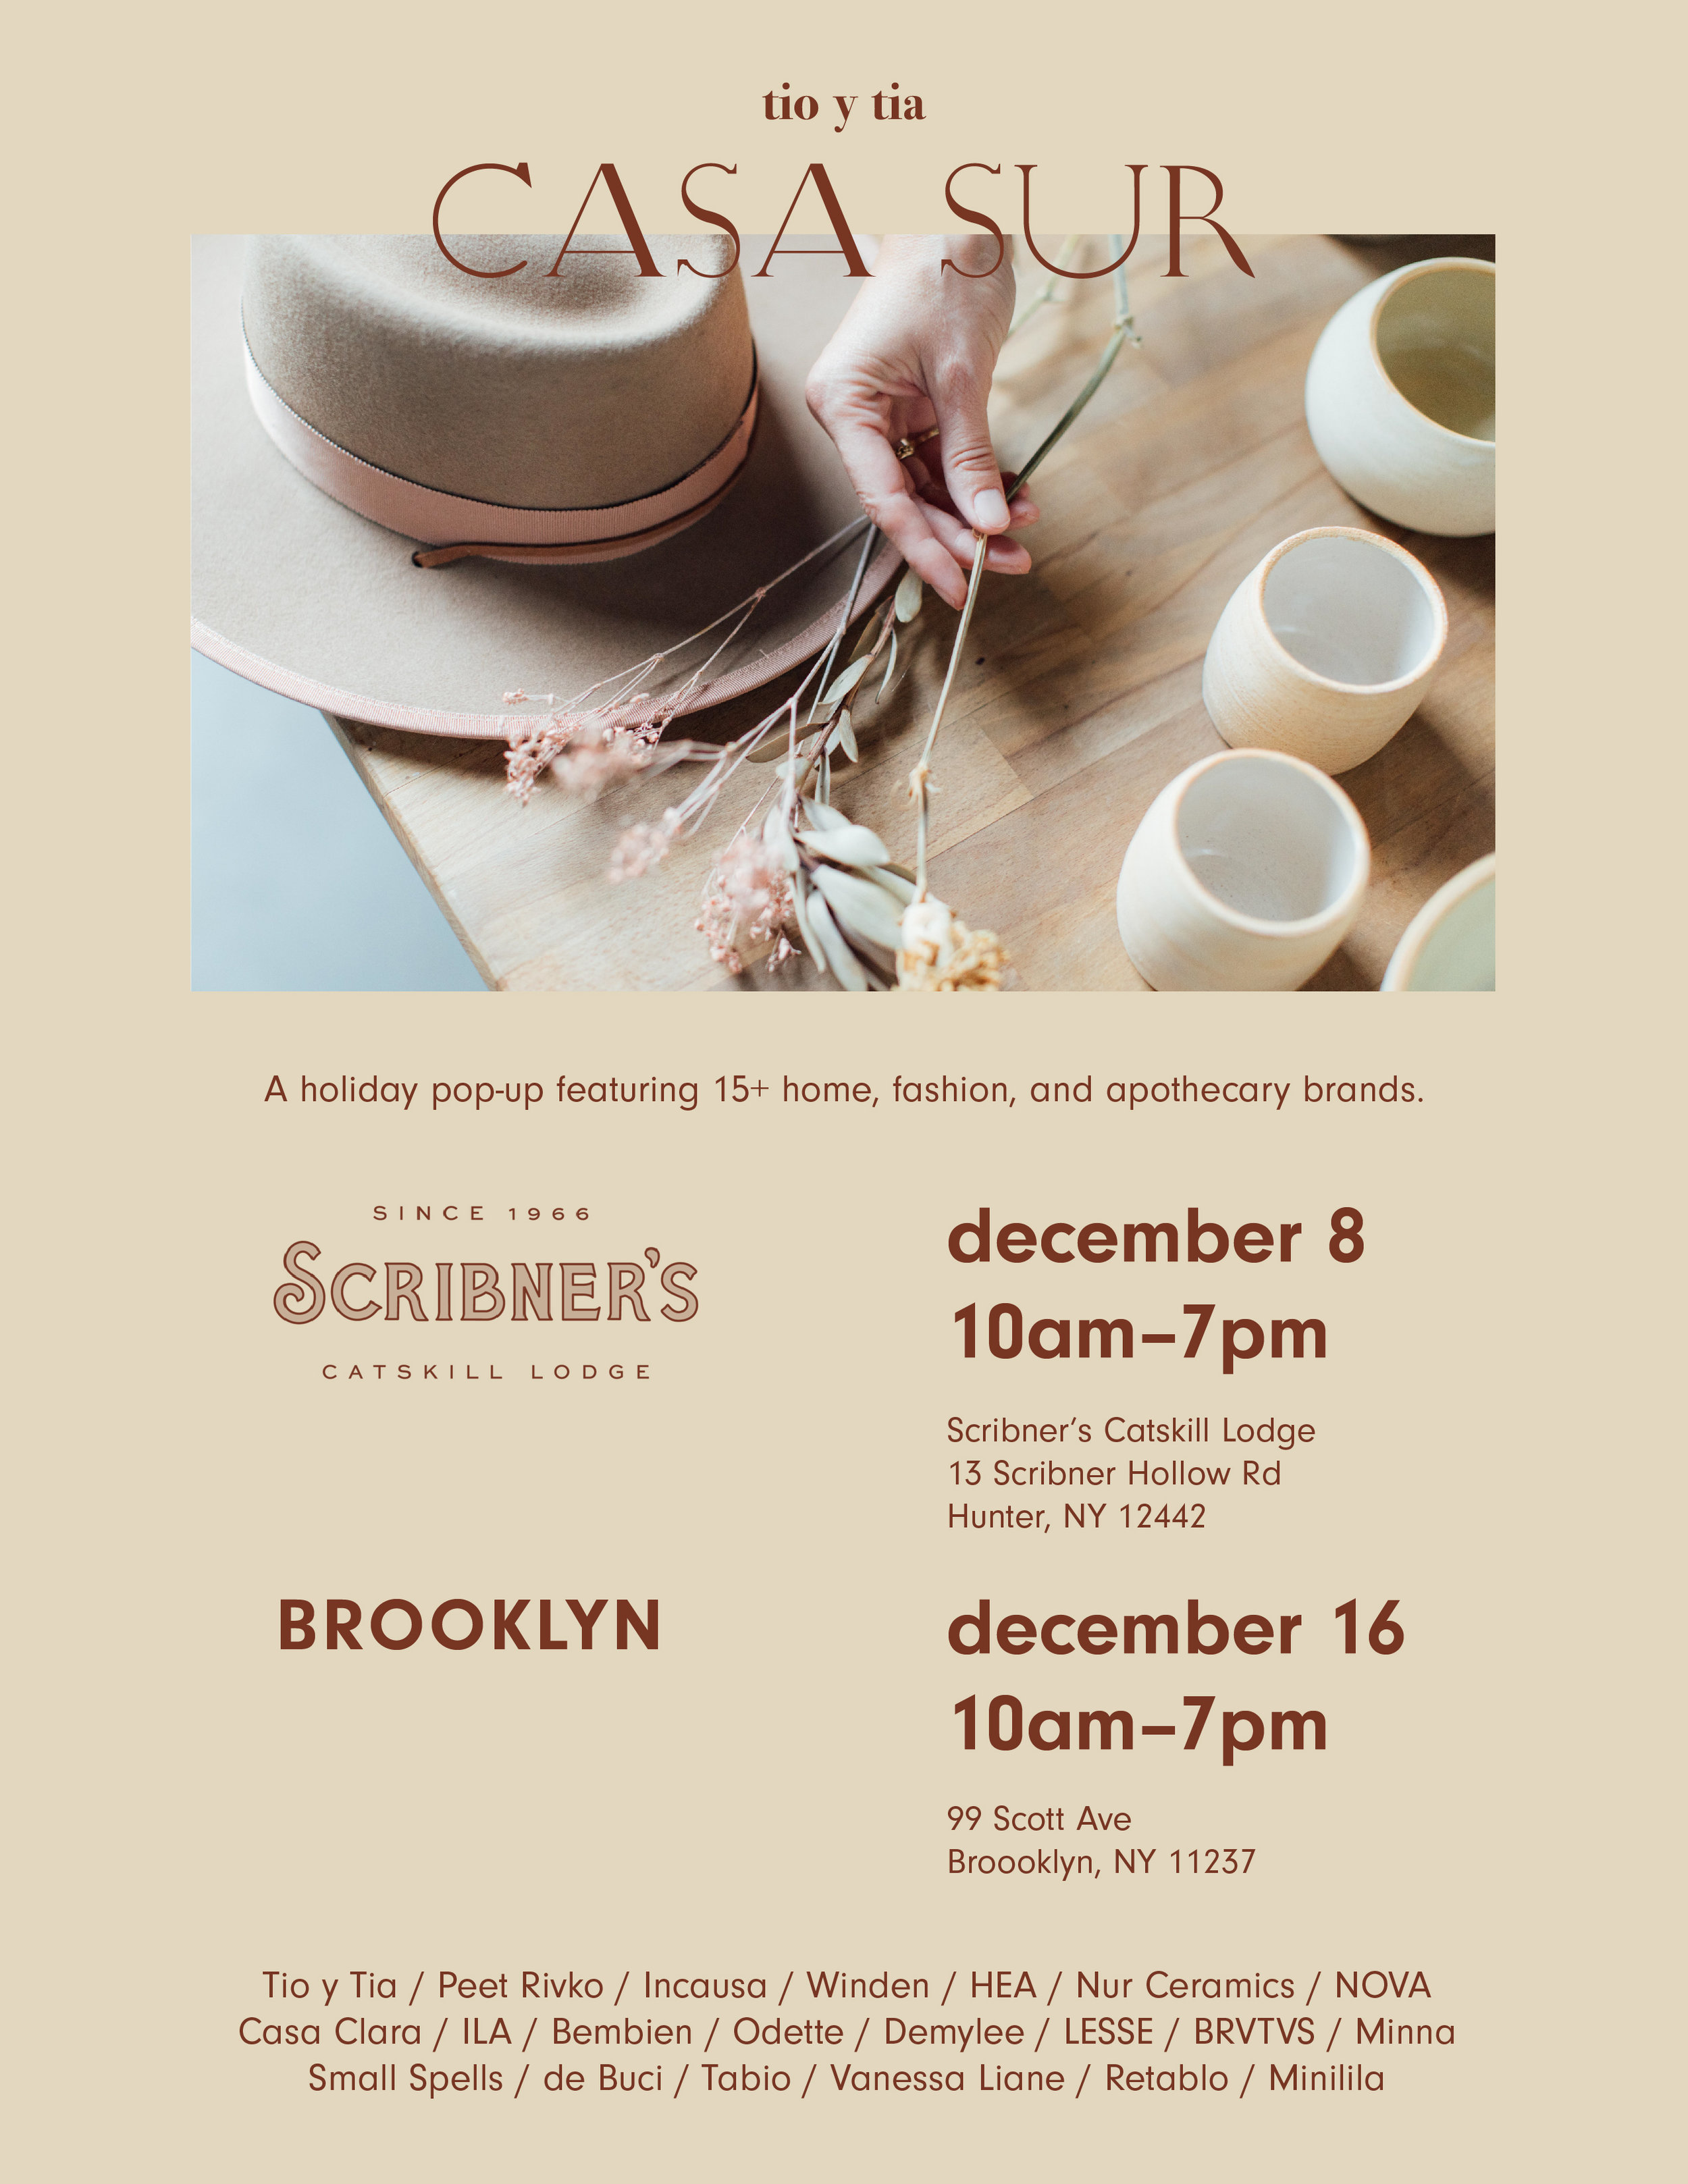 Shop a selection of our jewelry at two upcoming  Casa Sur  pop-up holiday events!:     Scribner's Lodge , Hunter, NY  Saturday December 8th in Hunter, NY  11-7pm     Fabr studio , Bushwick, Brooklyn  Sunday December 16th  11-7pm    Read more about Casa Sur's curated events on  Vogue.com.